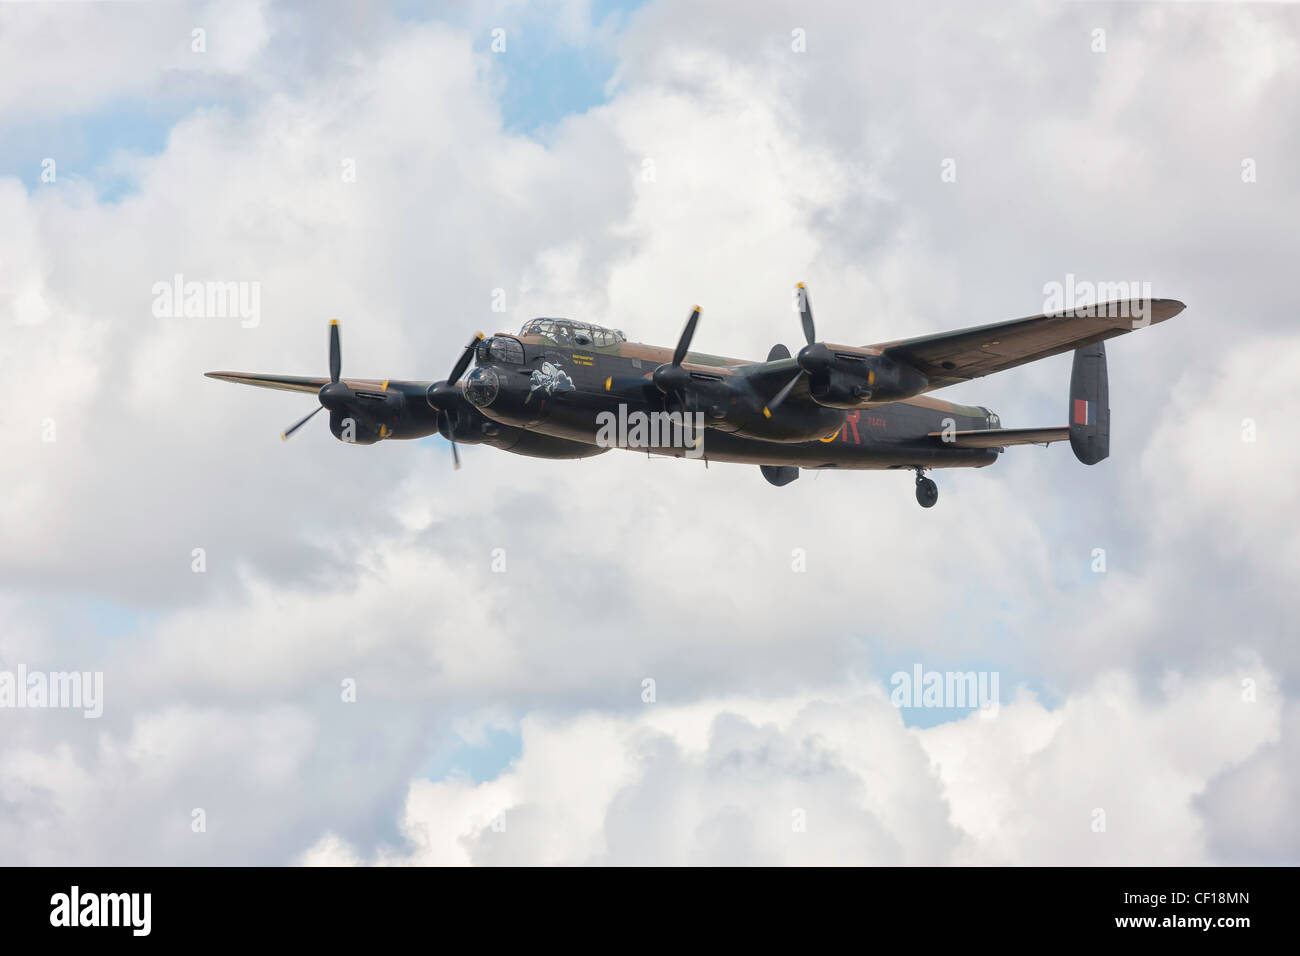 Avro Lancaster PA474 City of Lincoln at RIAT 2010, Fairford. - Stock Image